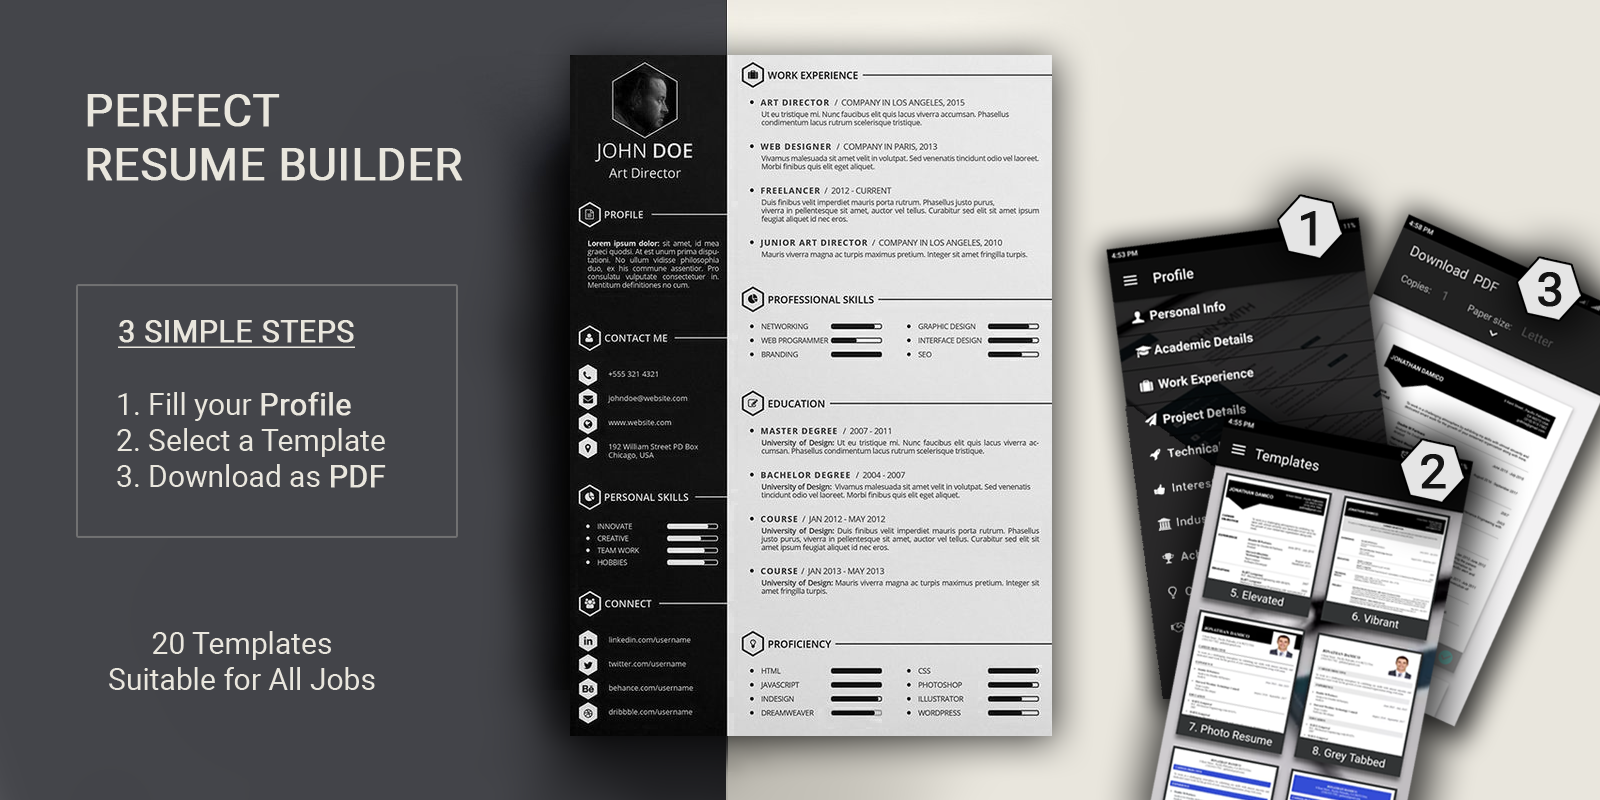 Free Resume Builder With 30+ Resume Templates Suitable For Various Jobs.  This Is The First Resume App With More Resume Formats.